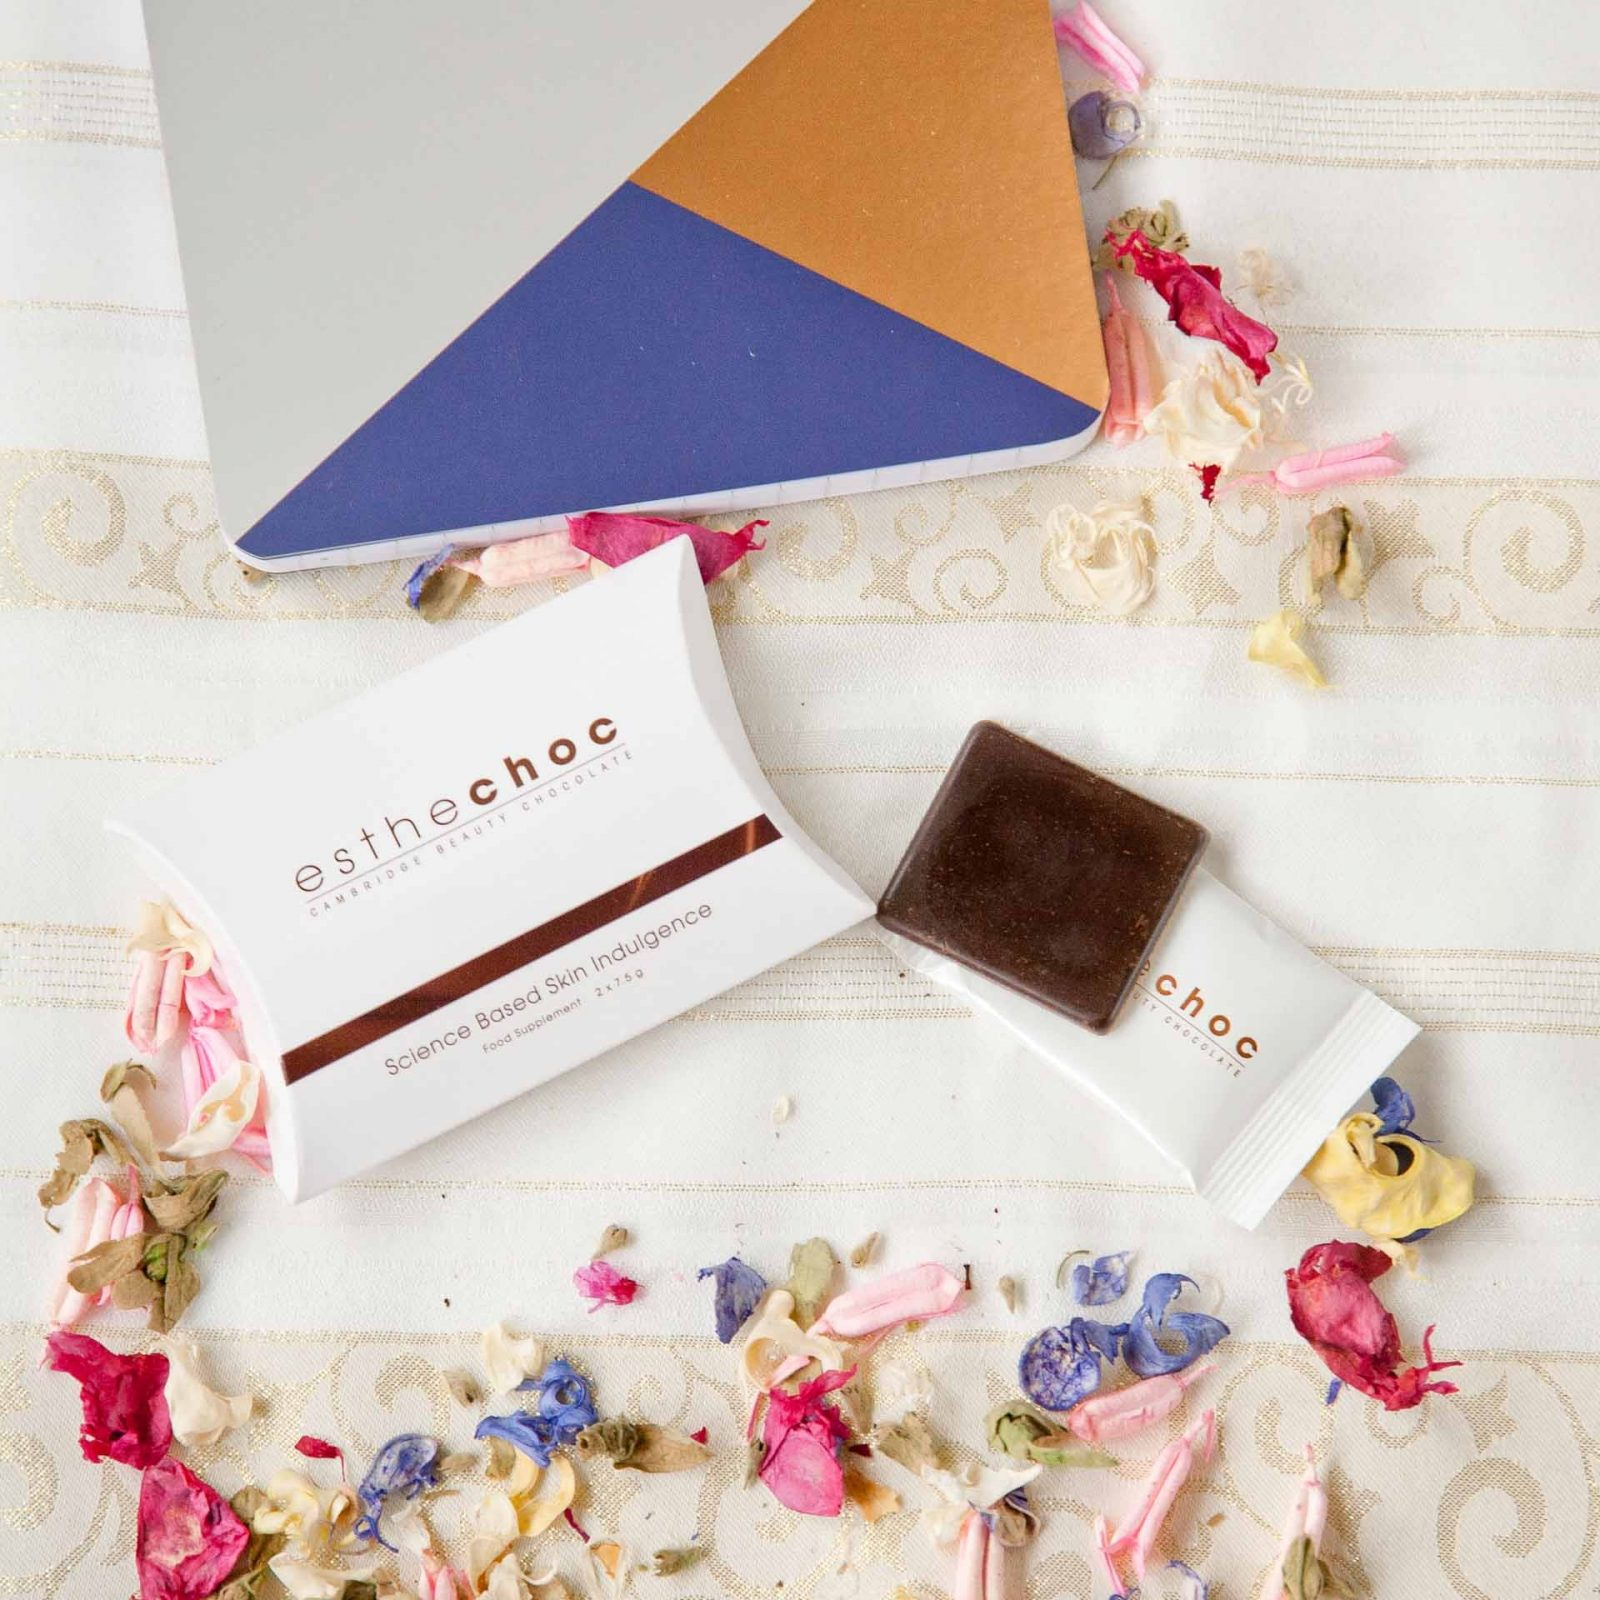 Discover three awesome beauty products for summer with Falcondale Life blog. Esthechoc health chocolate supplement to boost skin health. Contains powerful ingredients to boost circulation. Aspire to these luxury skin care brands.